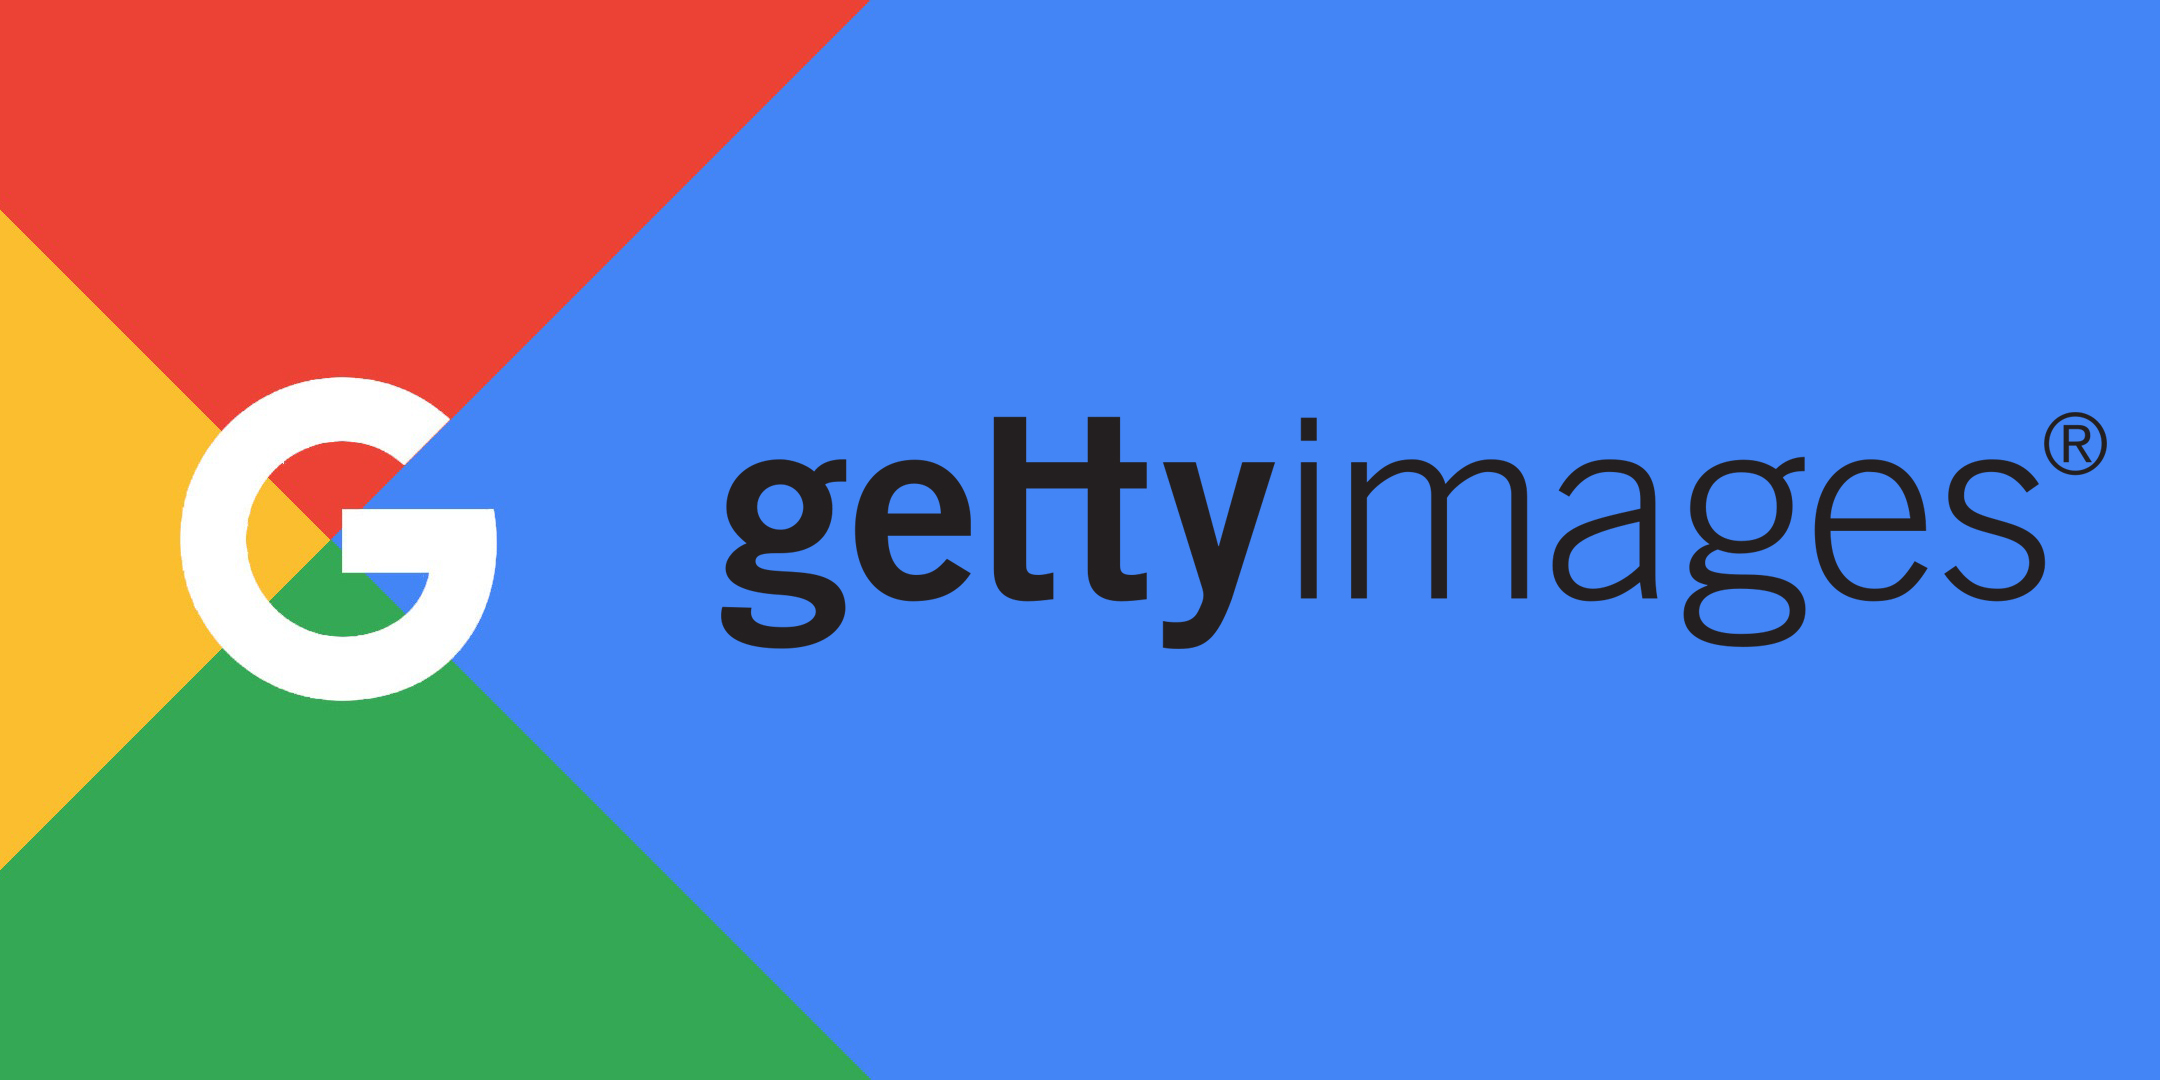 Direct Auto Exchange >> Google Images to remove direct photo links as part of Getty licensing deal - 9to5Google